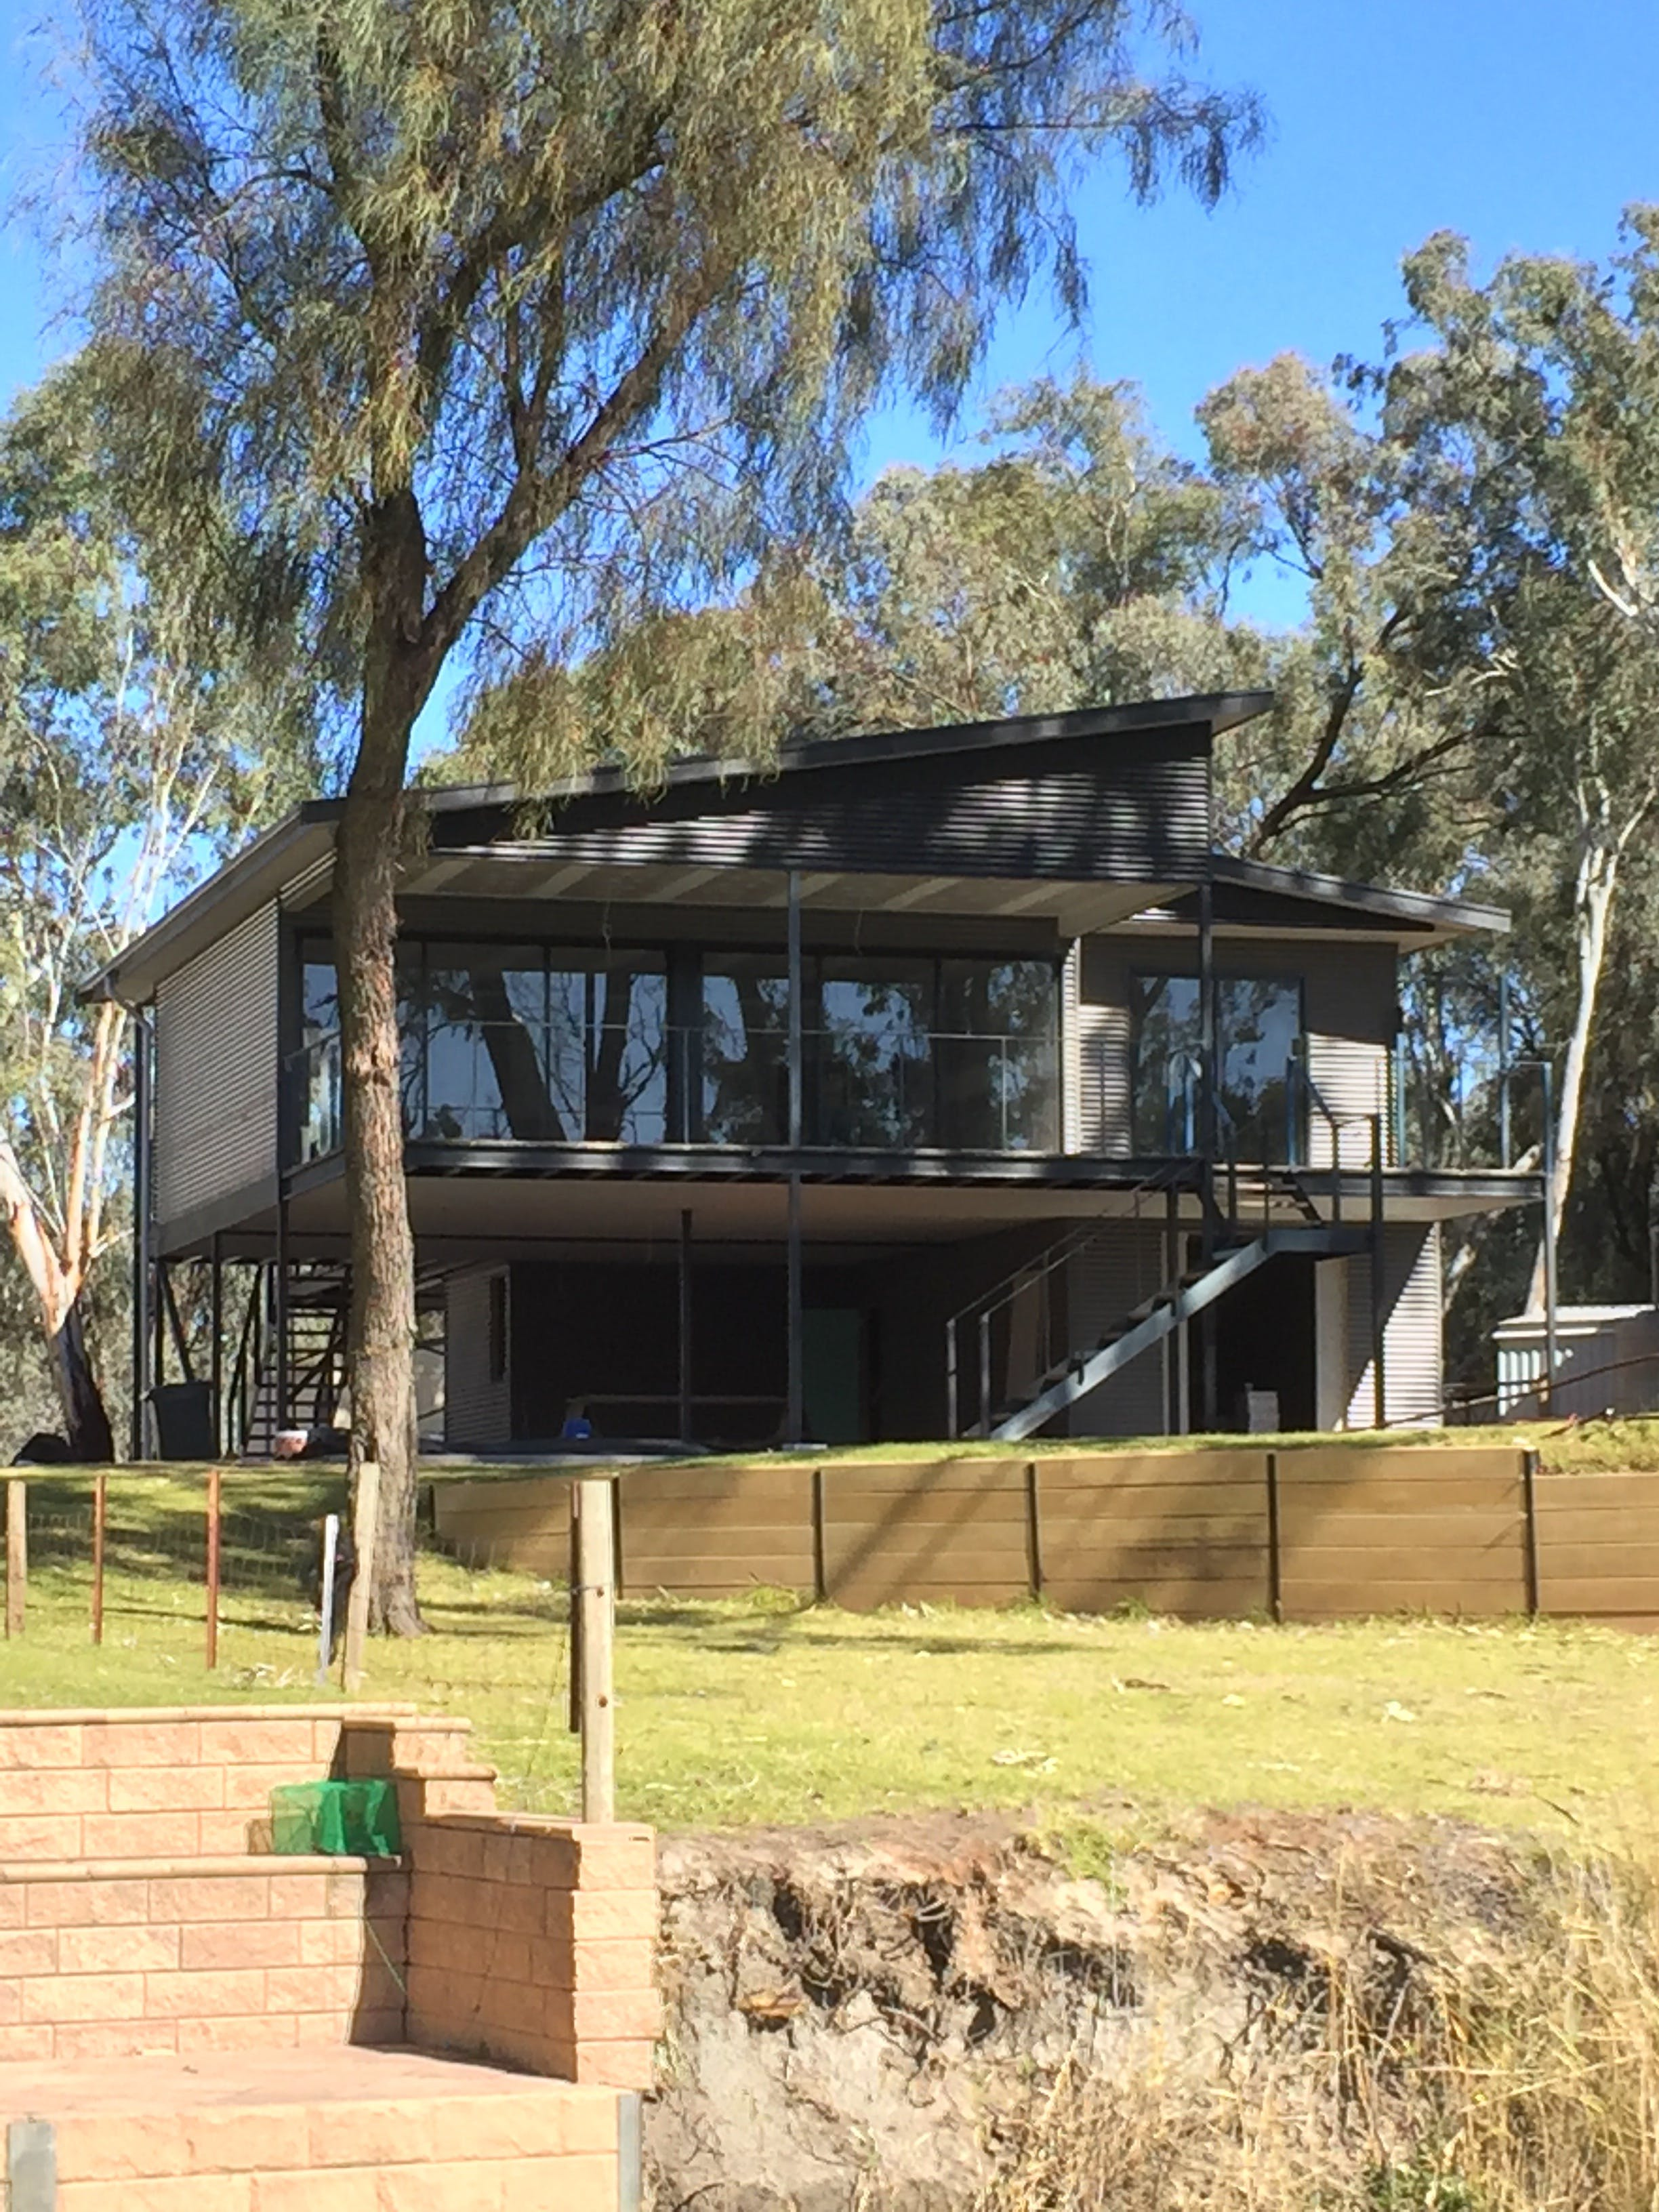 36 Brenda Park Via Morgan -River Shack Rentals - Accommodation Gold Coast